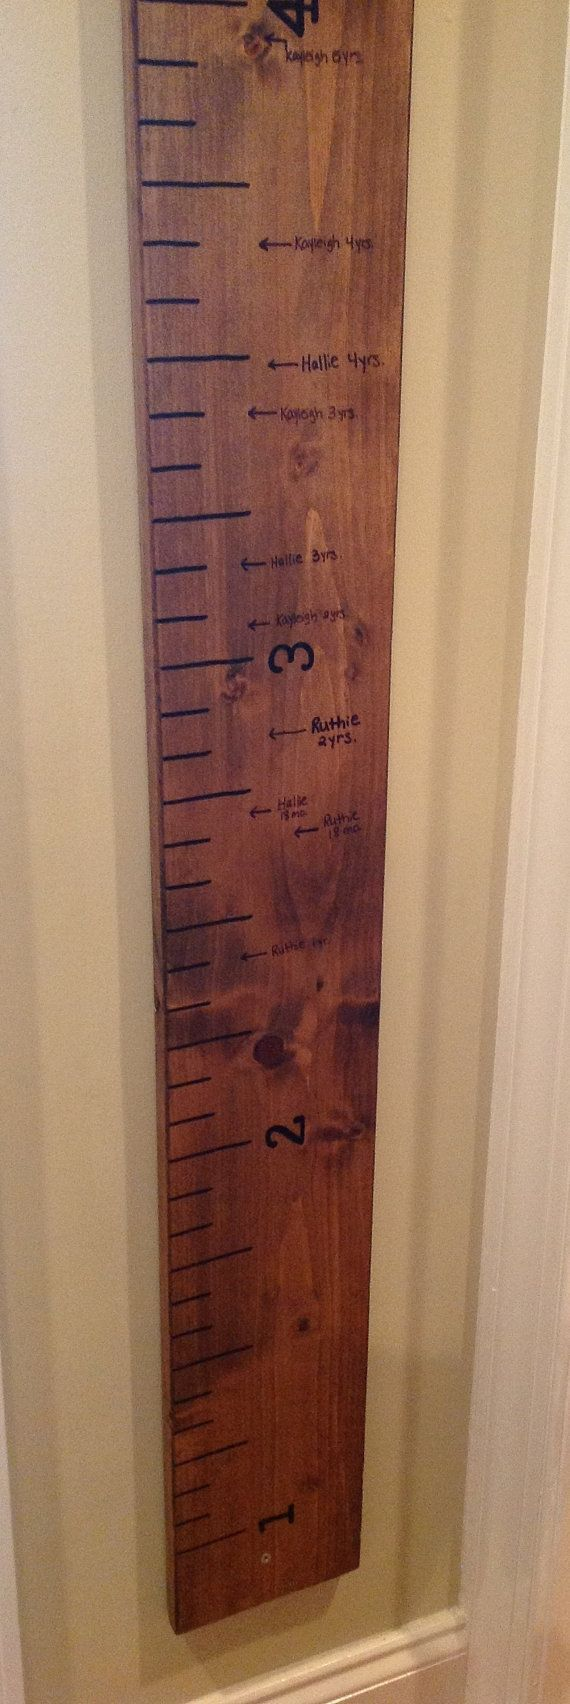 Giant Ruler. Family Growth Chart. Childrens Growth Chart. Childrens Measuring Chart. Rustic Home Decor. Wall Hanging. - http://www.homedecoz.com/home-decor/giant-ruler-family-growth-chart-childrens-growth-chart-childrens-measuring-chart-rustic-home-decor-wall-hanging/